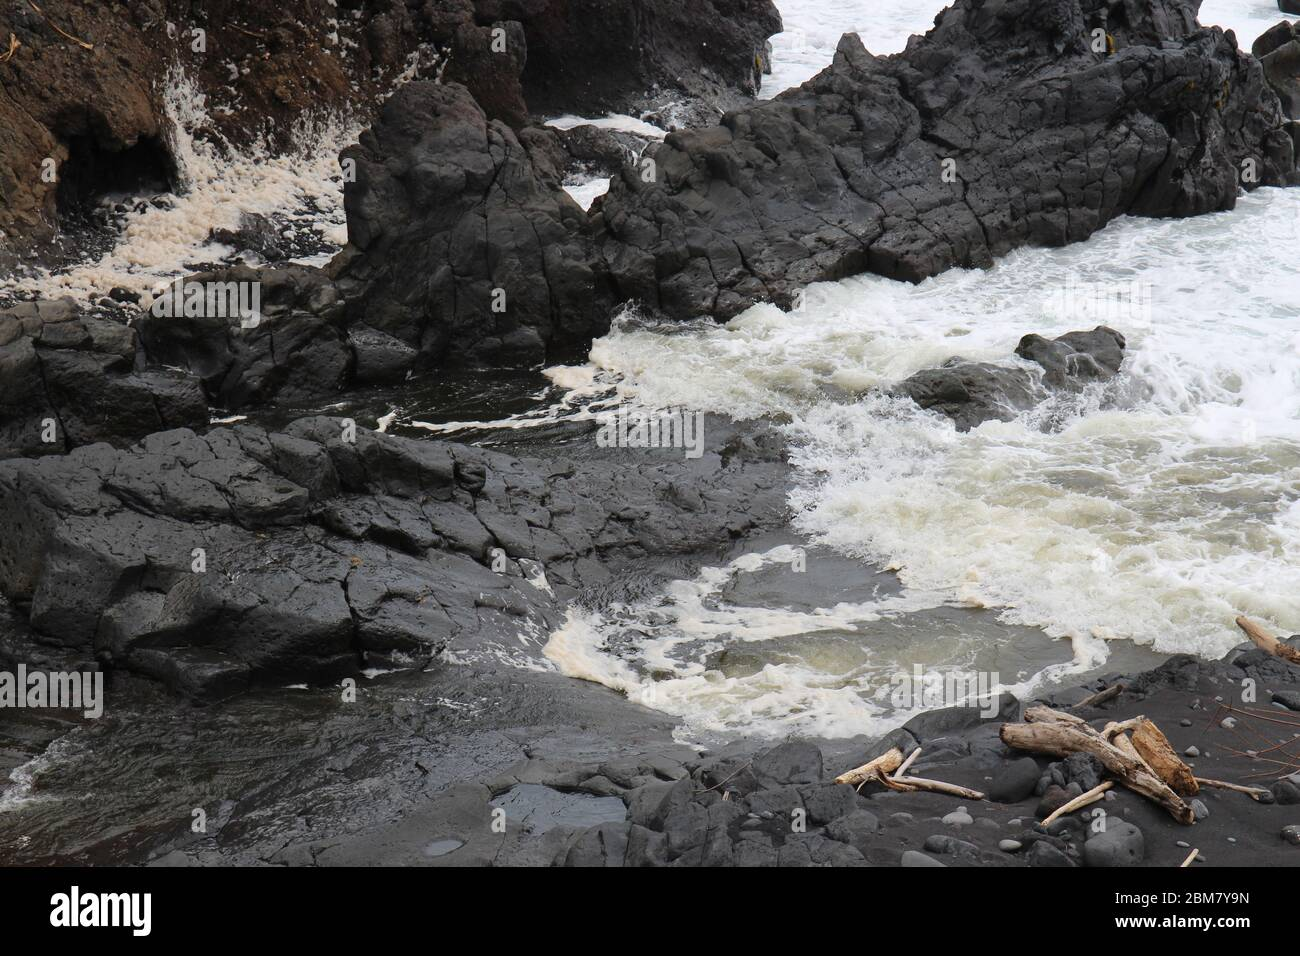 Palikea stream running through volcanic rock and flowing into the Pacific Ocean at the Oheo Gulch in Hana, Maui, Hawaii, USA Stock Photo